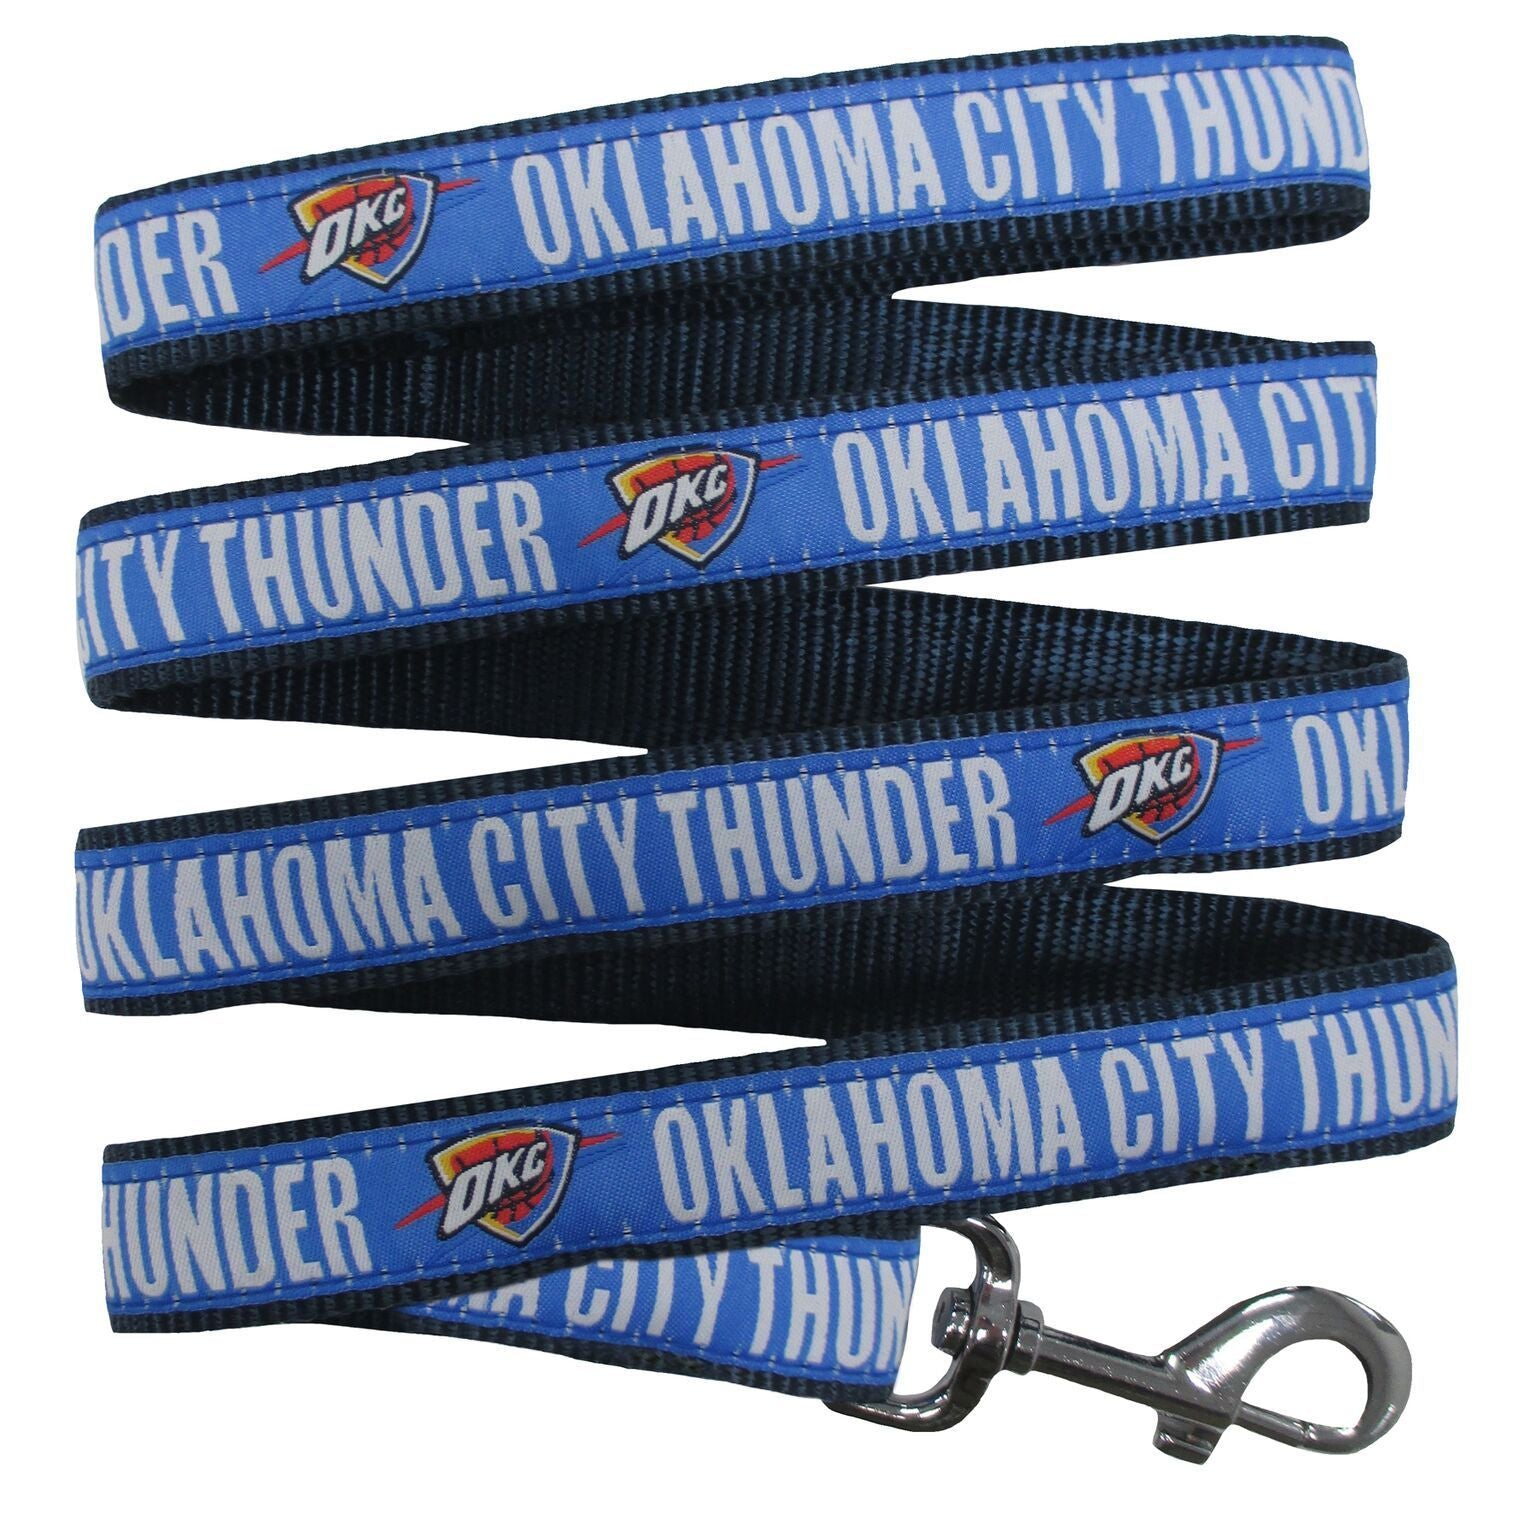 9090a4862c9 Oklahoma City Puppy Dog Jersey Cheerleader Uniform Collar Leash - Jersey  Champs - Custom Basketball